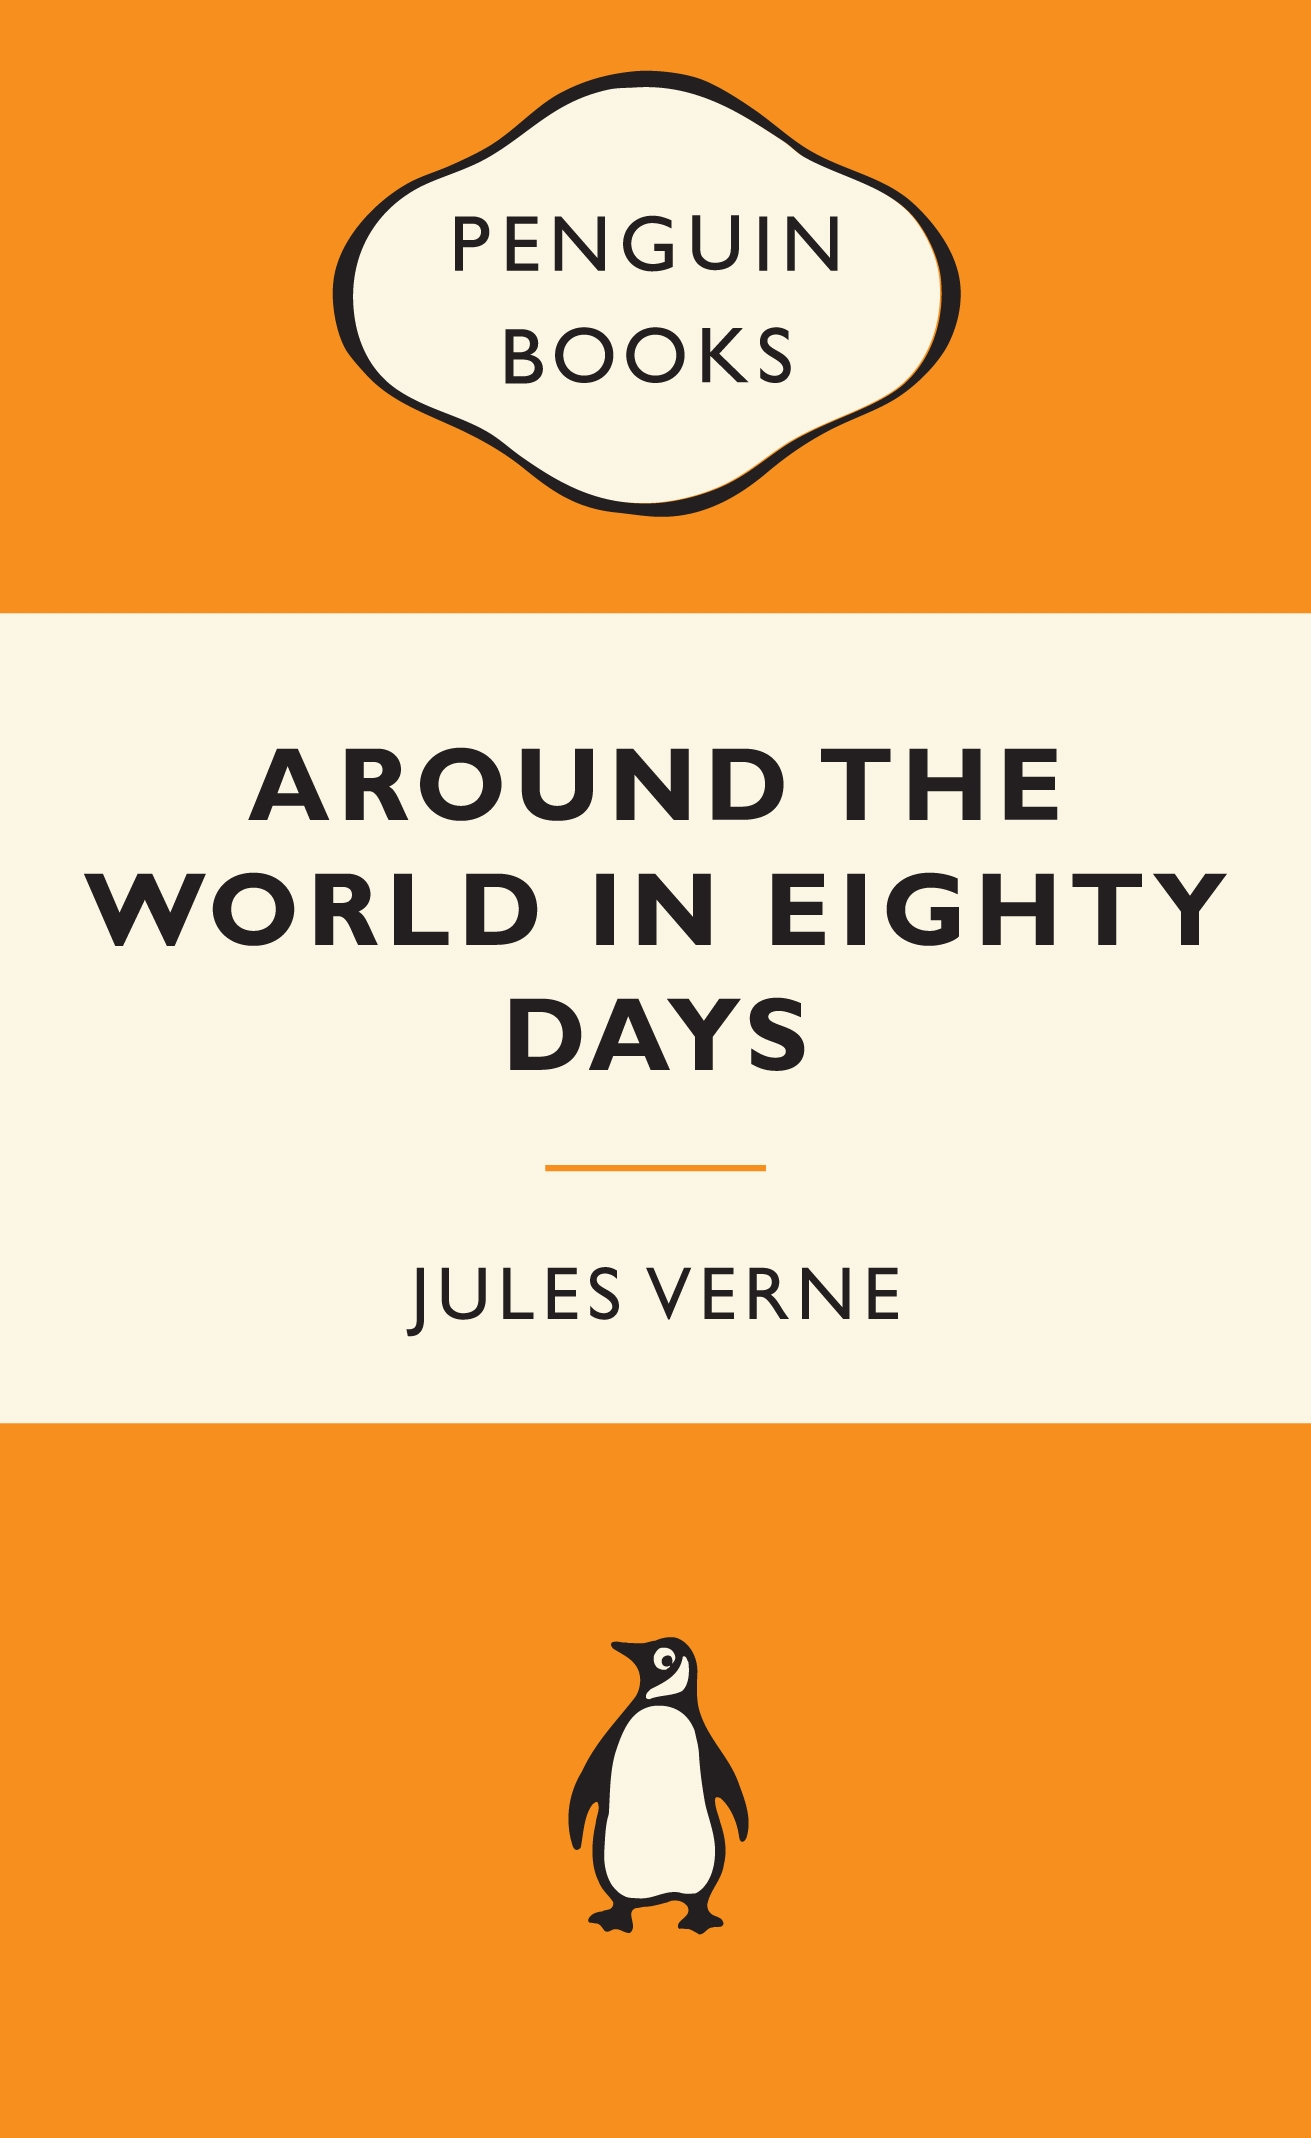 Penguin Book Cover Download ~ Around the world in eighty days popular penguins